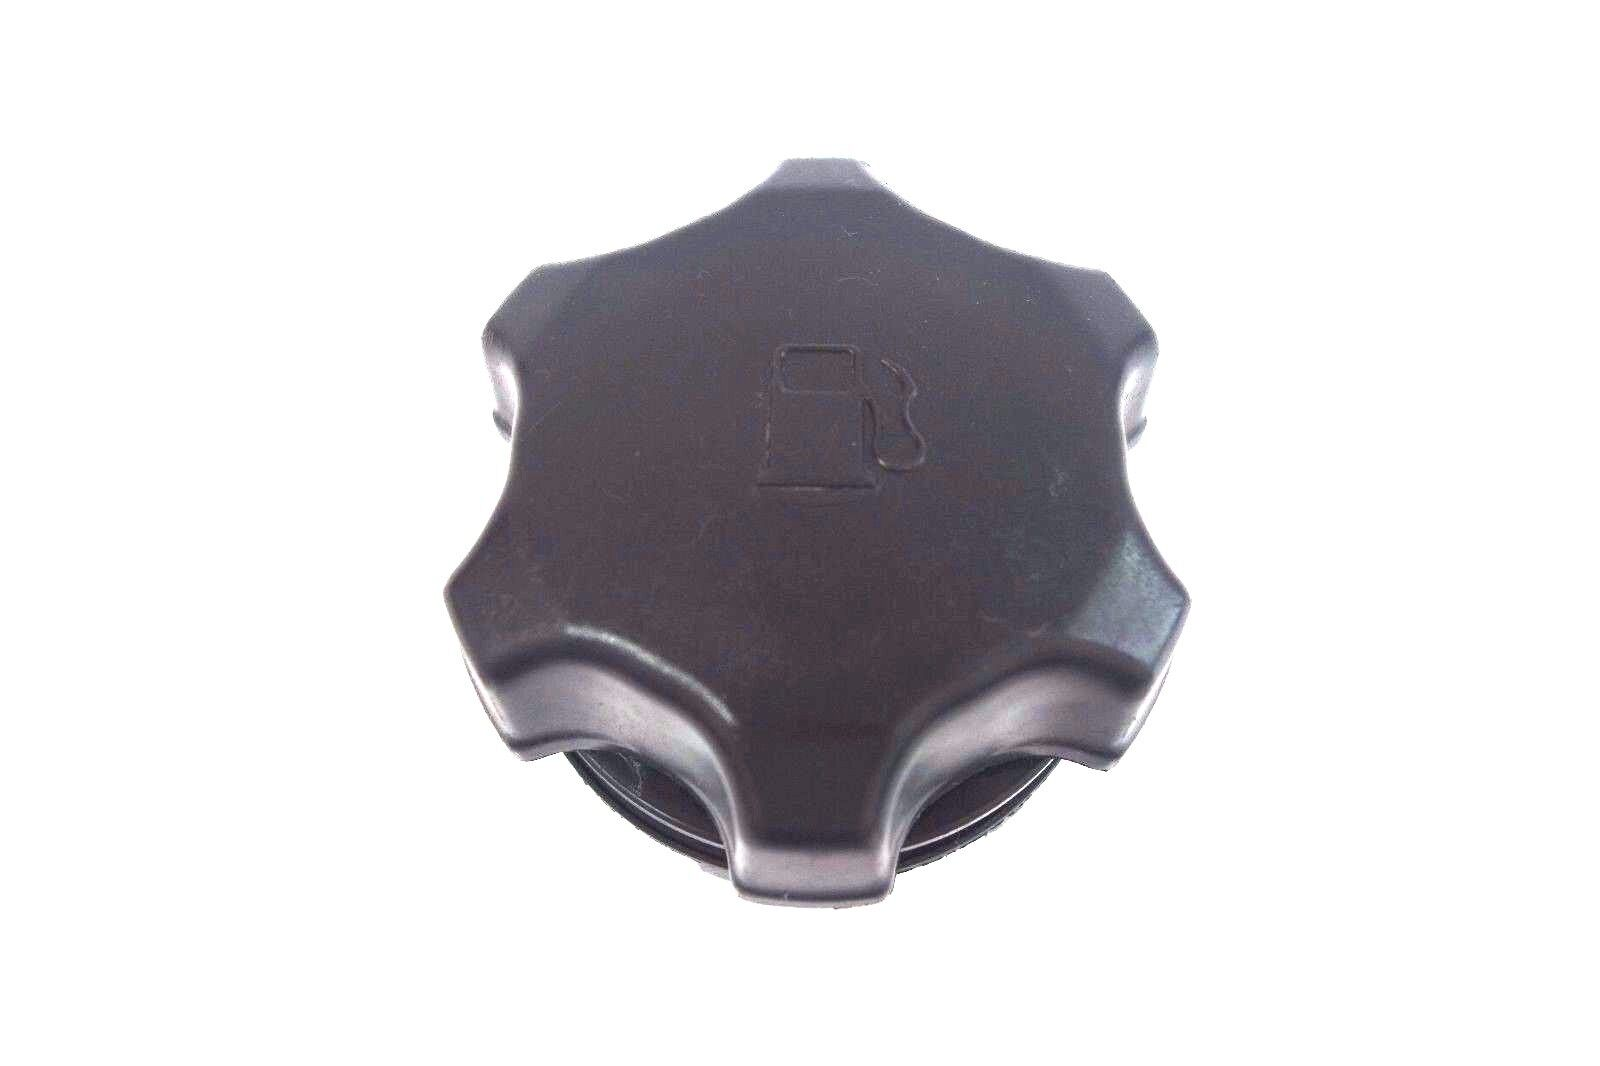 Kawasaki OEM PWC Fuel Gas Cap with Filler Neck Assembly 1999-2005 Ultra 130 150